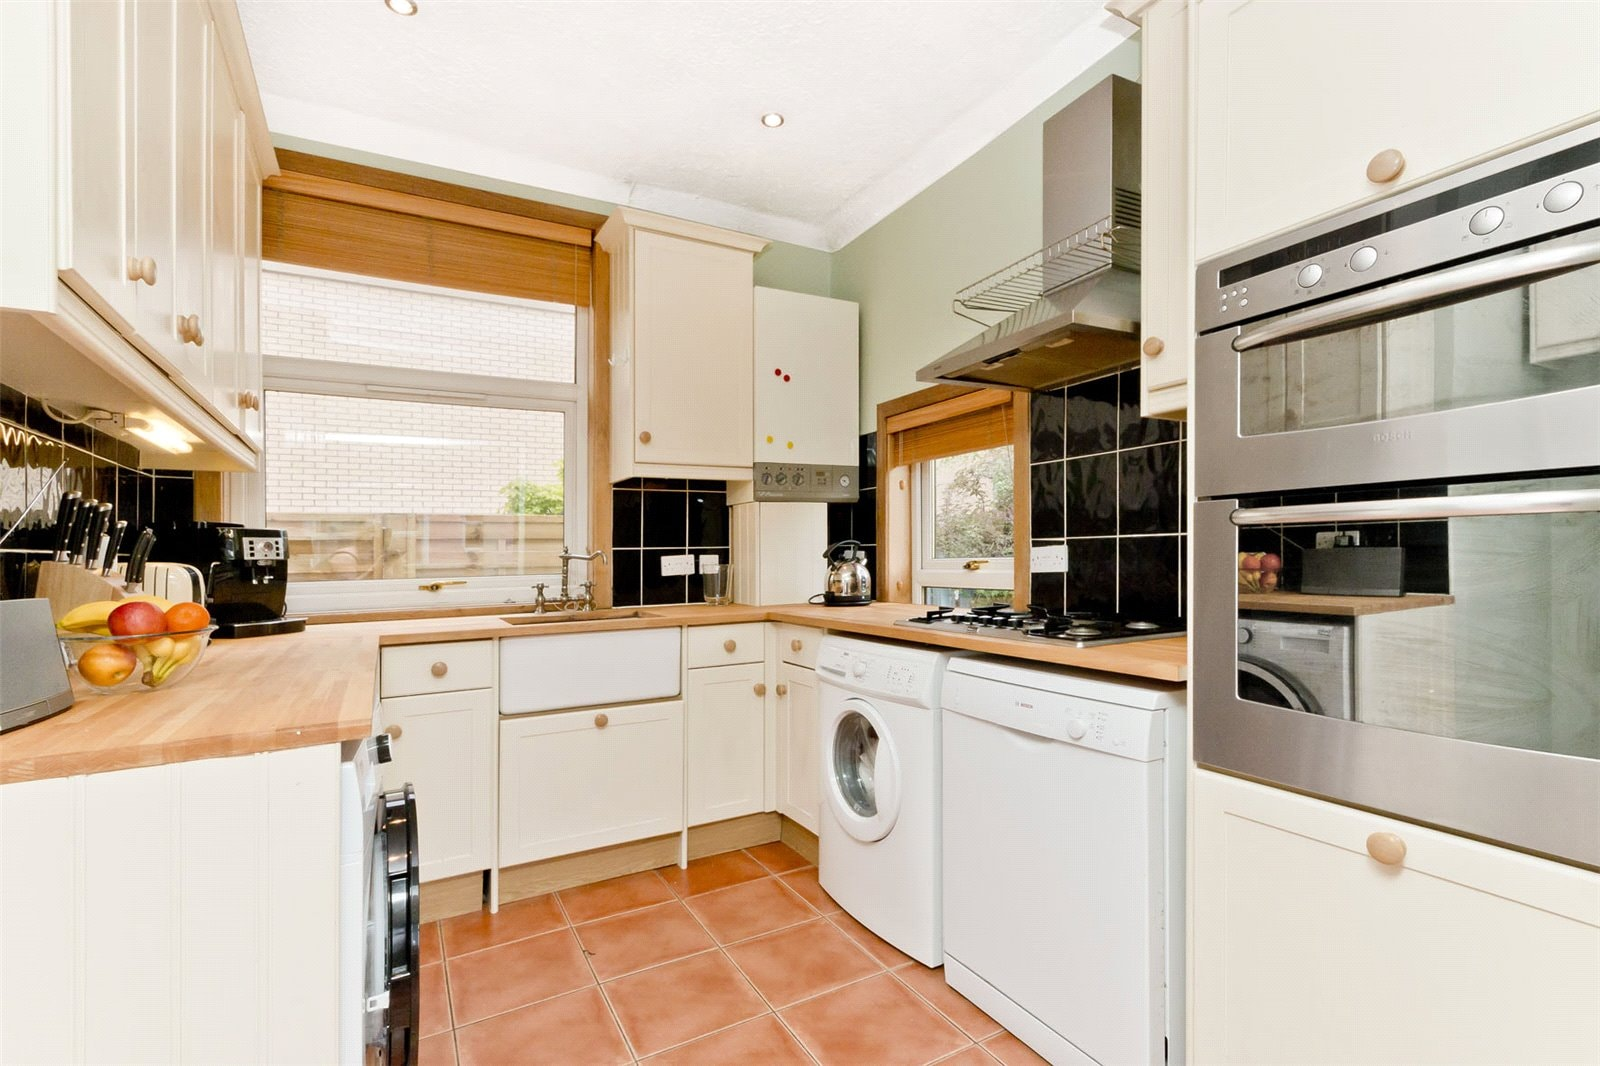 554 Queensferry Road kitchen